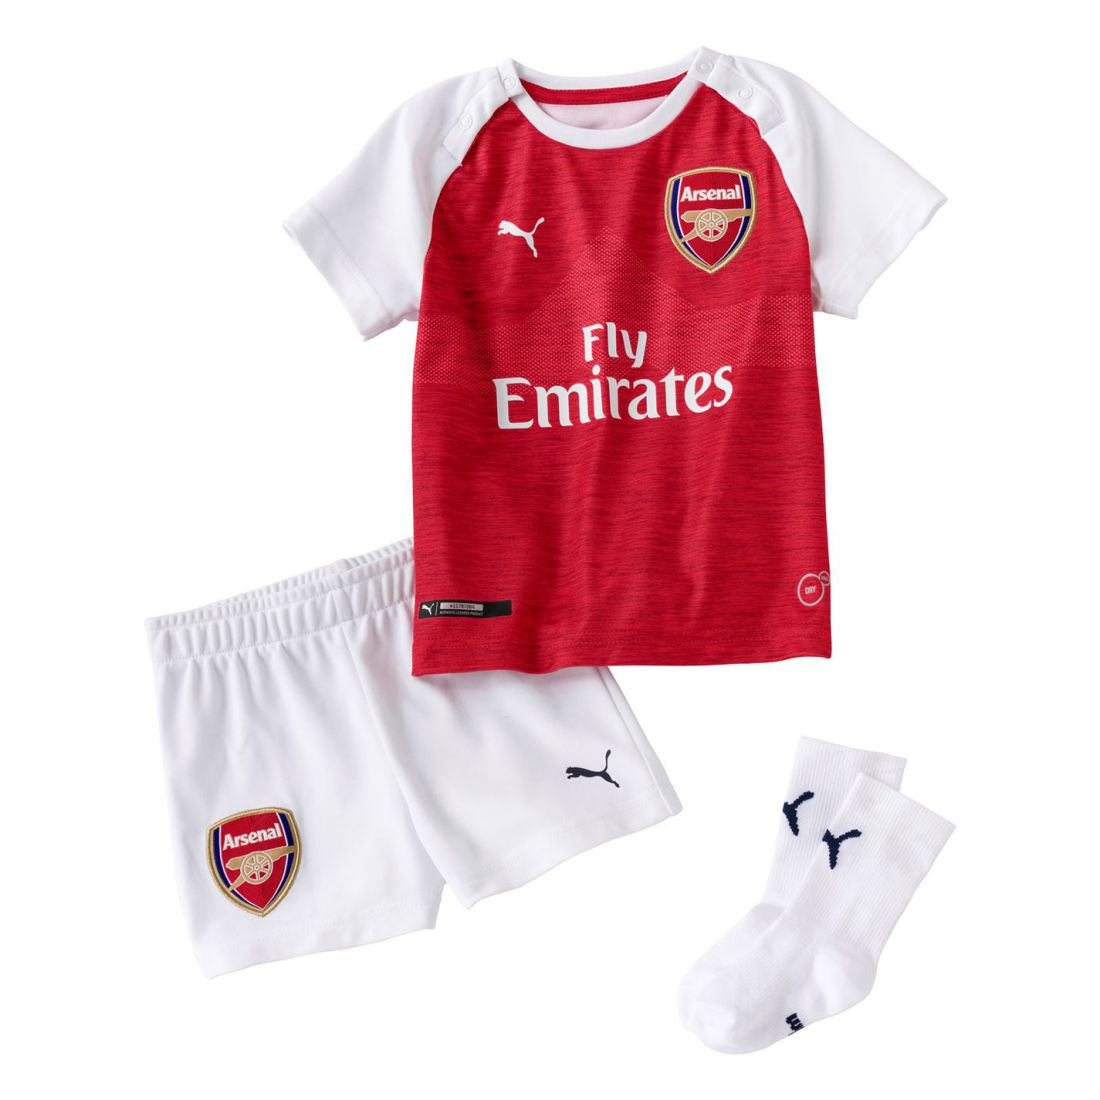 cheap for discount 440cd 5d6ce Details about Puma Arsenal Home Baby kit 2018 2019 Childrens Domestic  Minikits Football